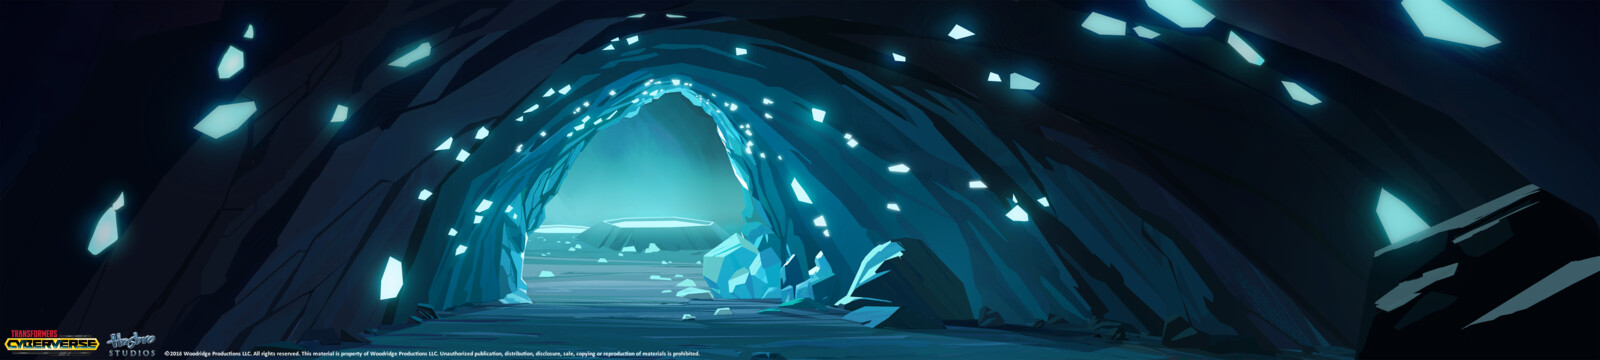 Key background based on a concept by Andrew Murray